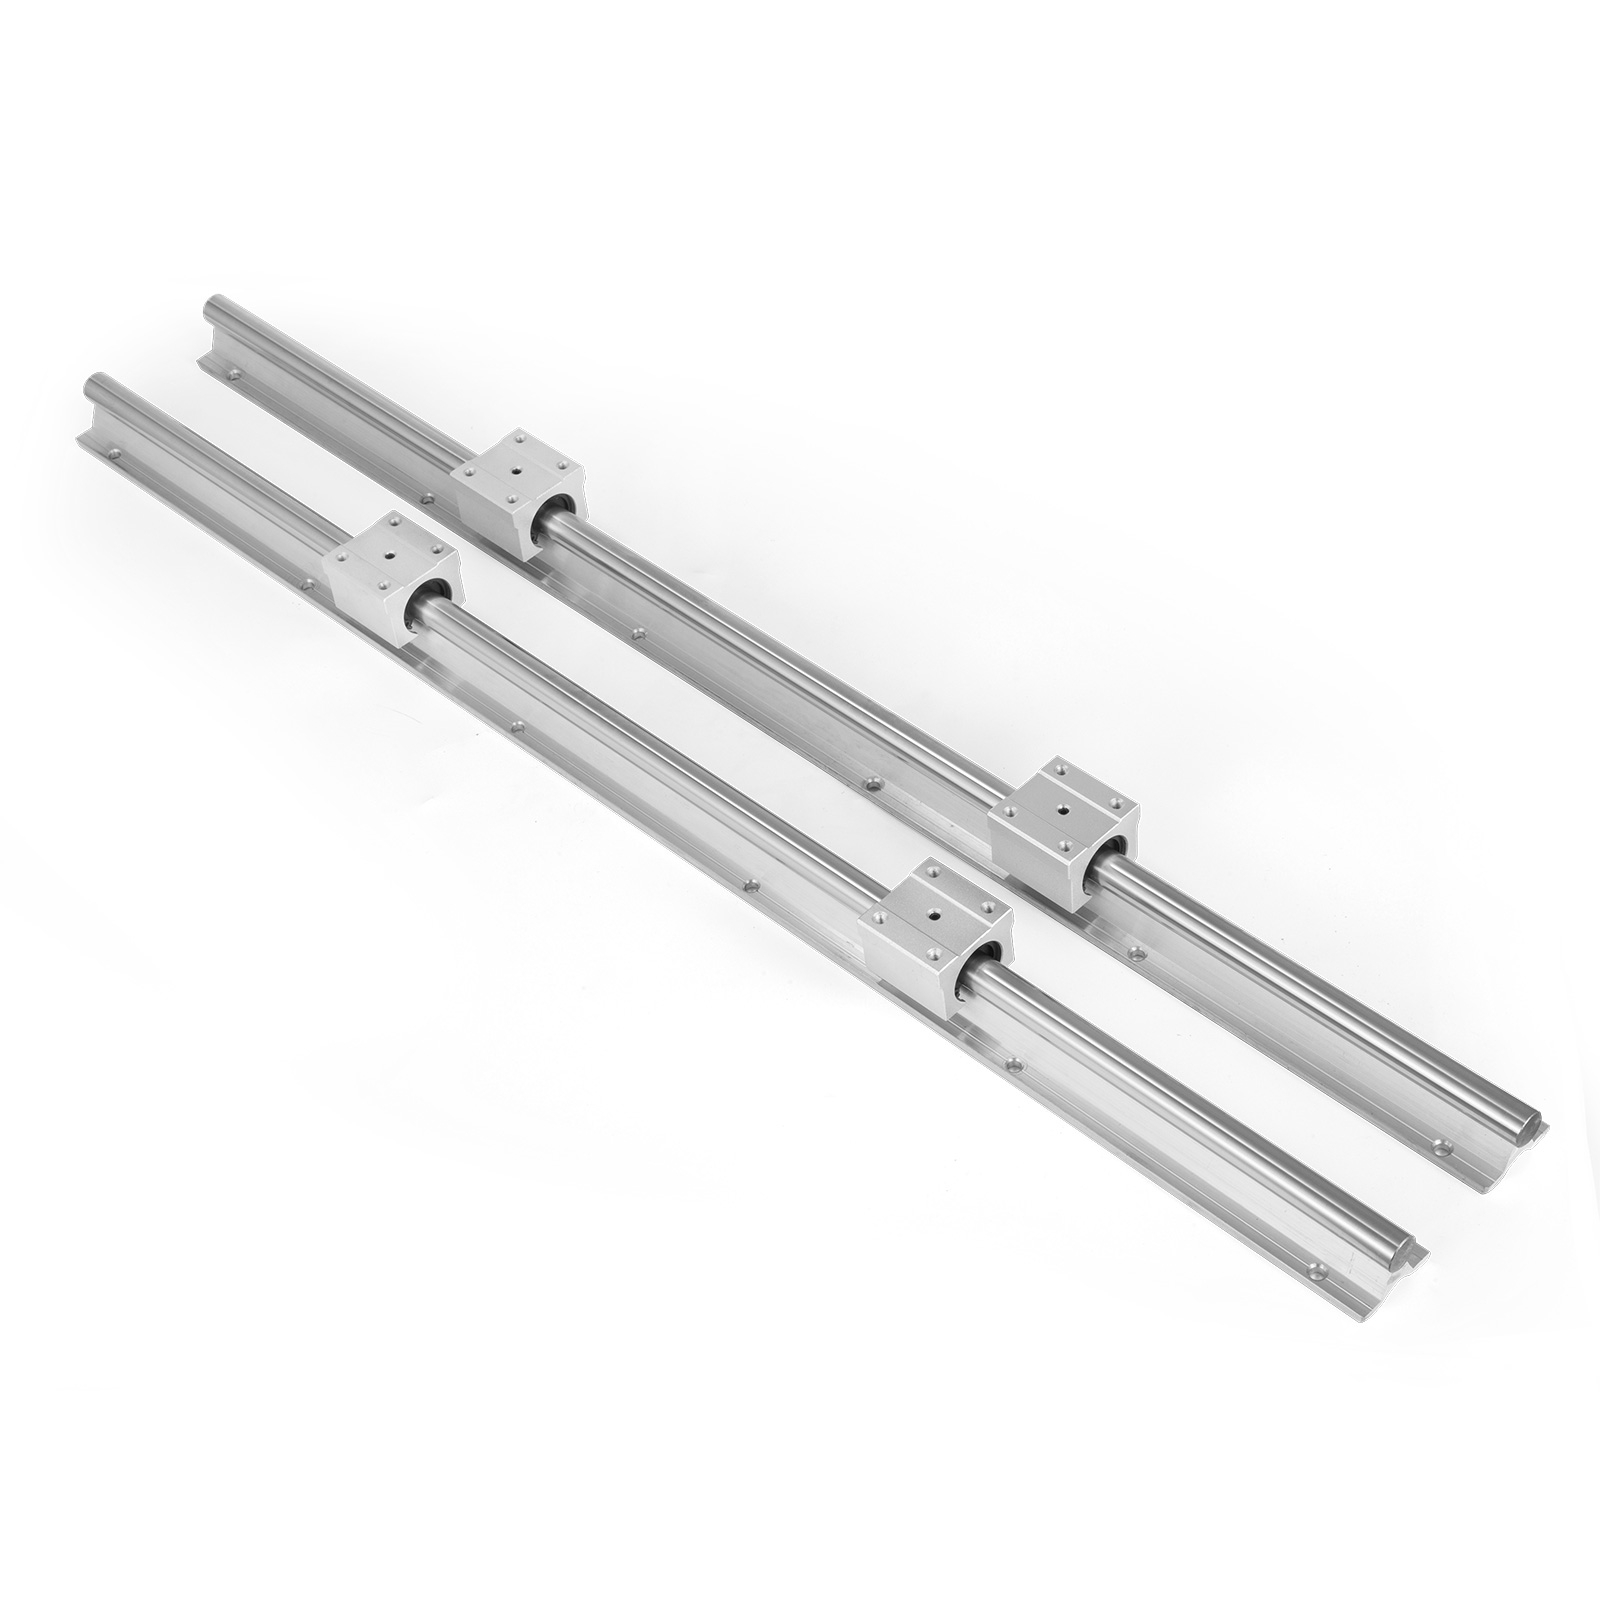 SBR16 300mm-1200mm CNC Linear Rail Shaft Slide Rod 4 SBR16UU Bearing Block